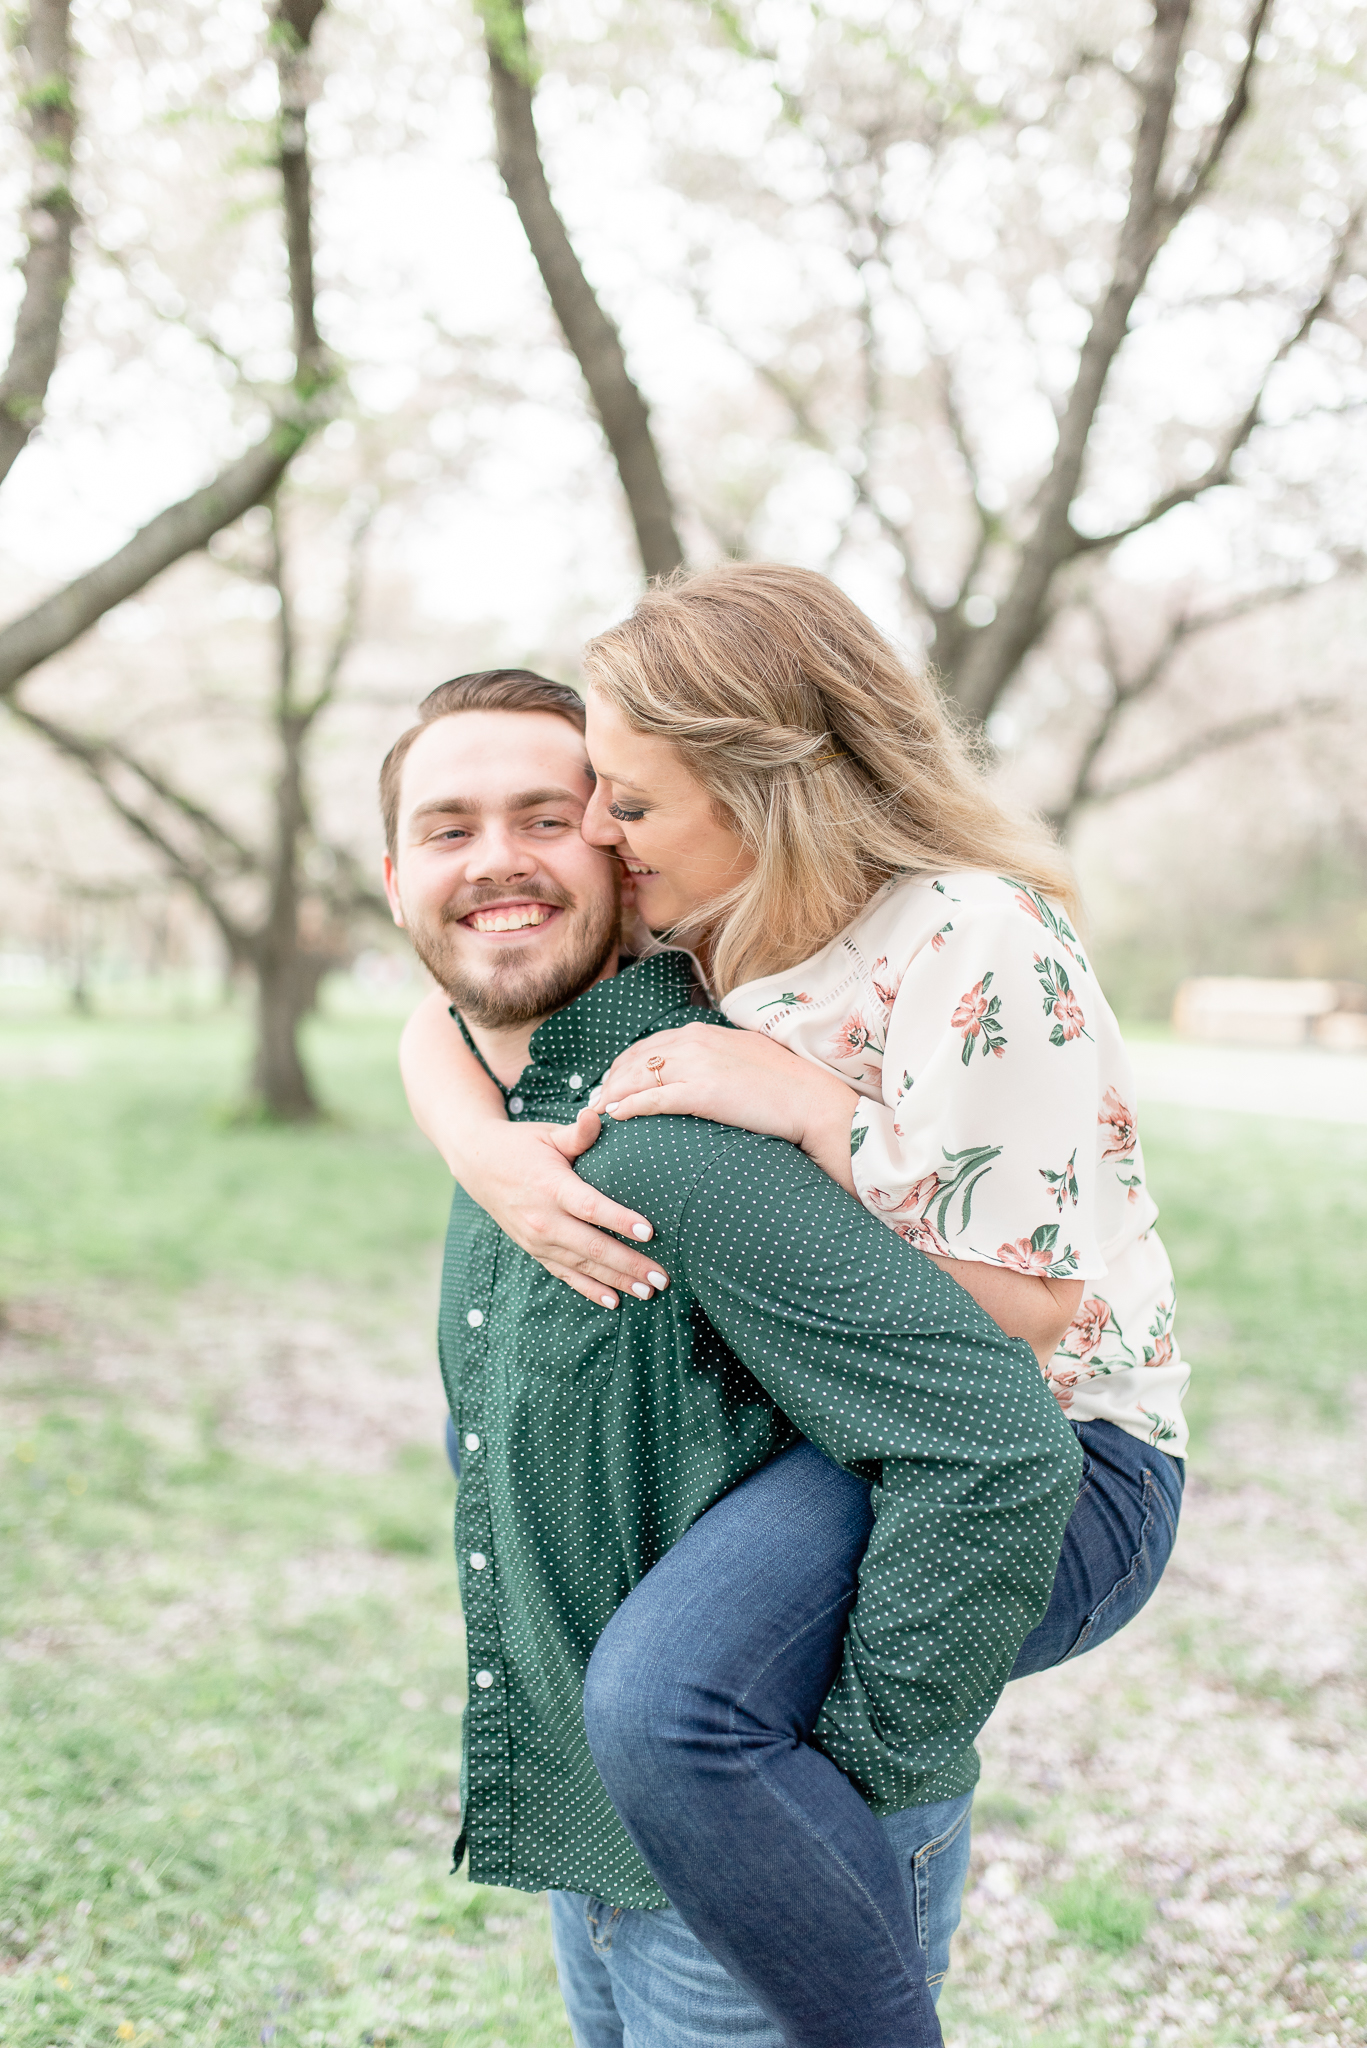 04_14_2019_Dana_Slifer_Photography_Alyssa_and_Brett_Engagement_Session_53.jpg